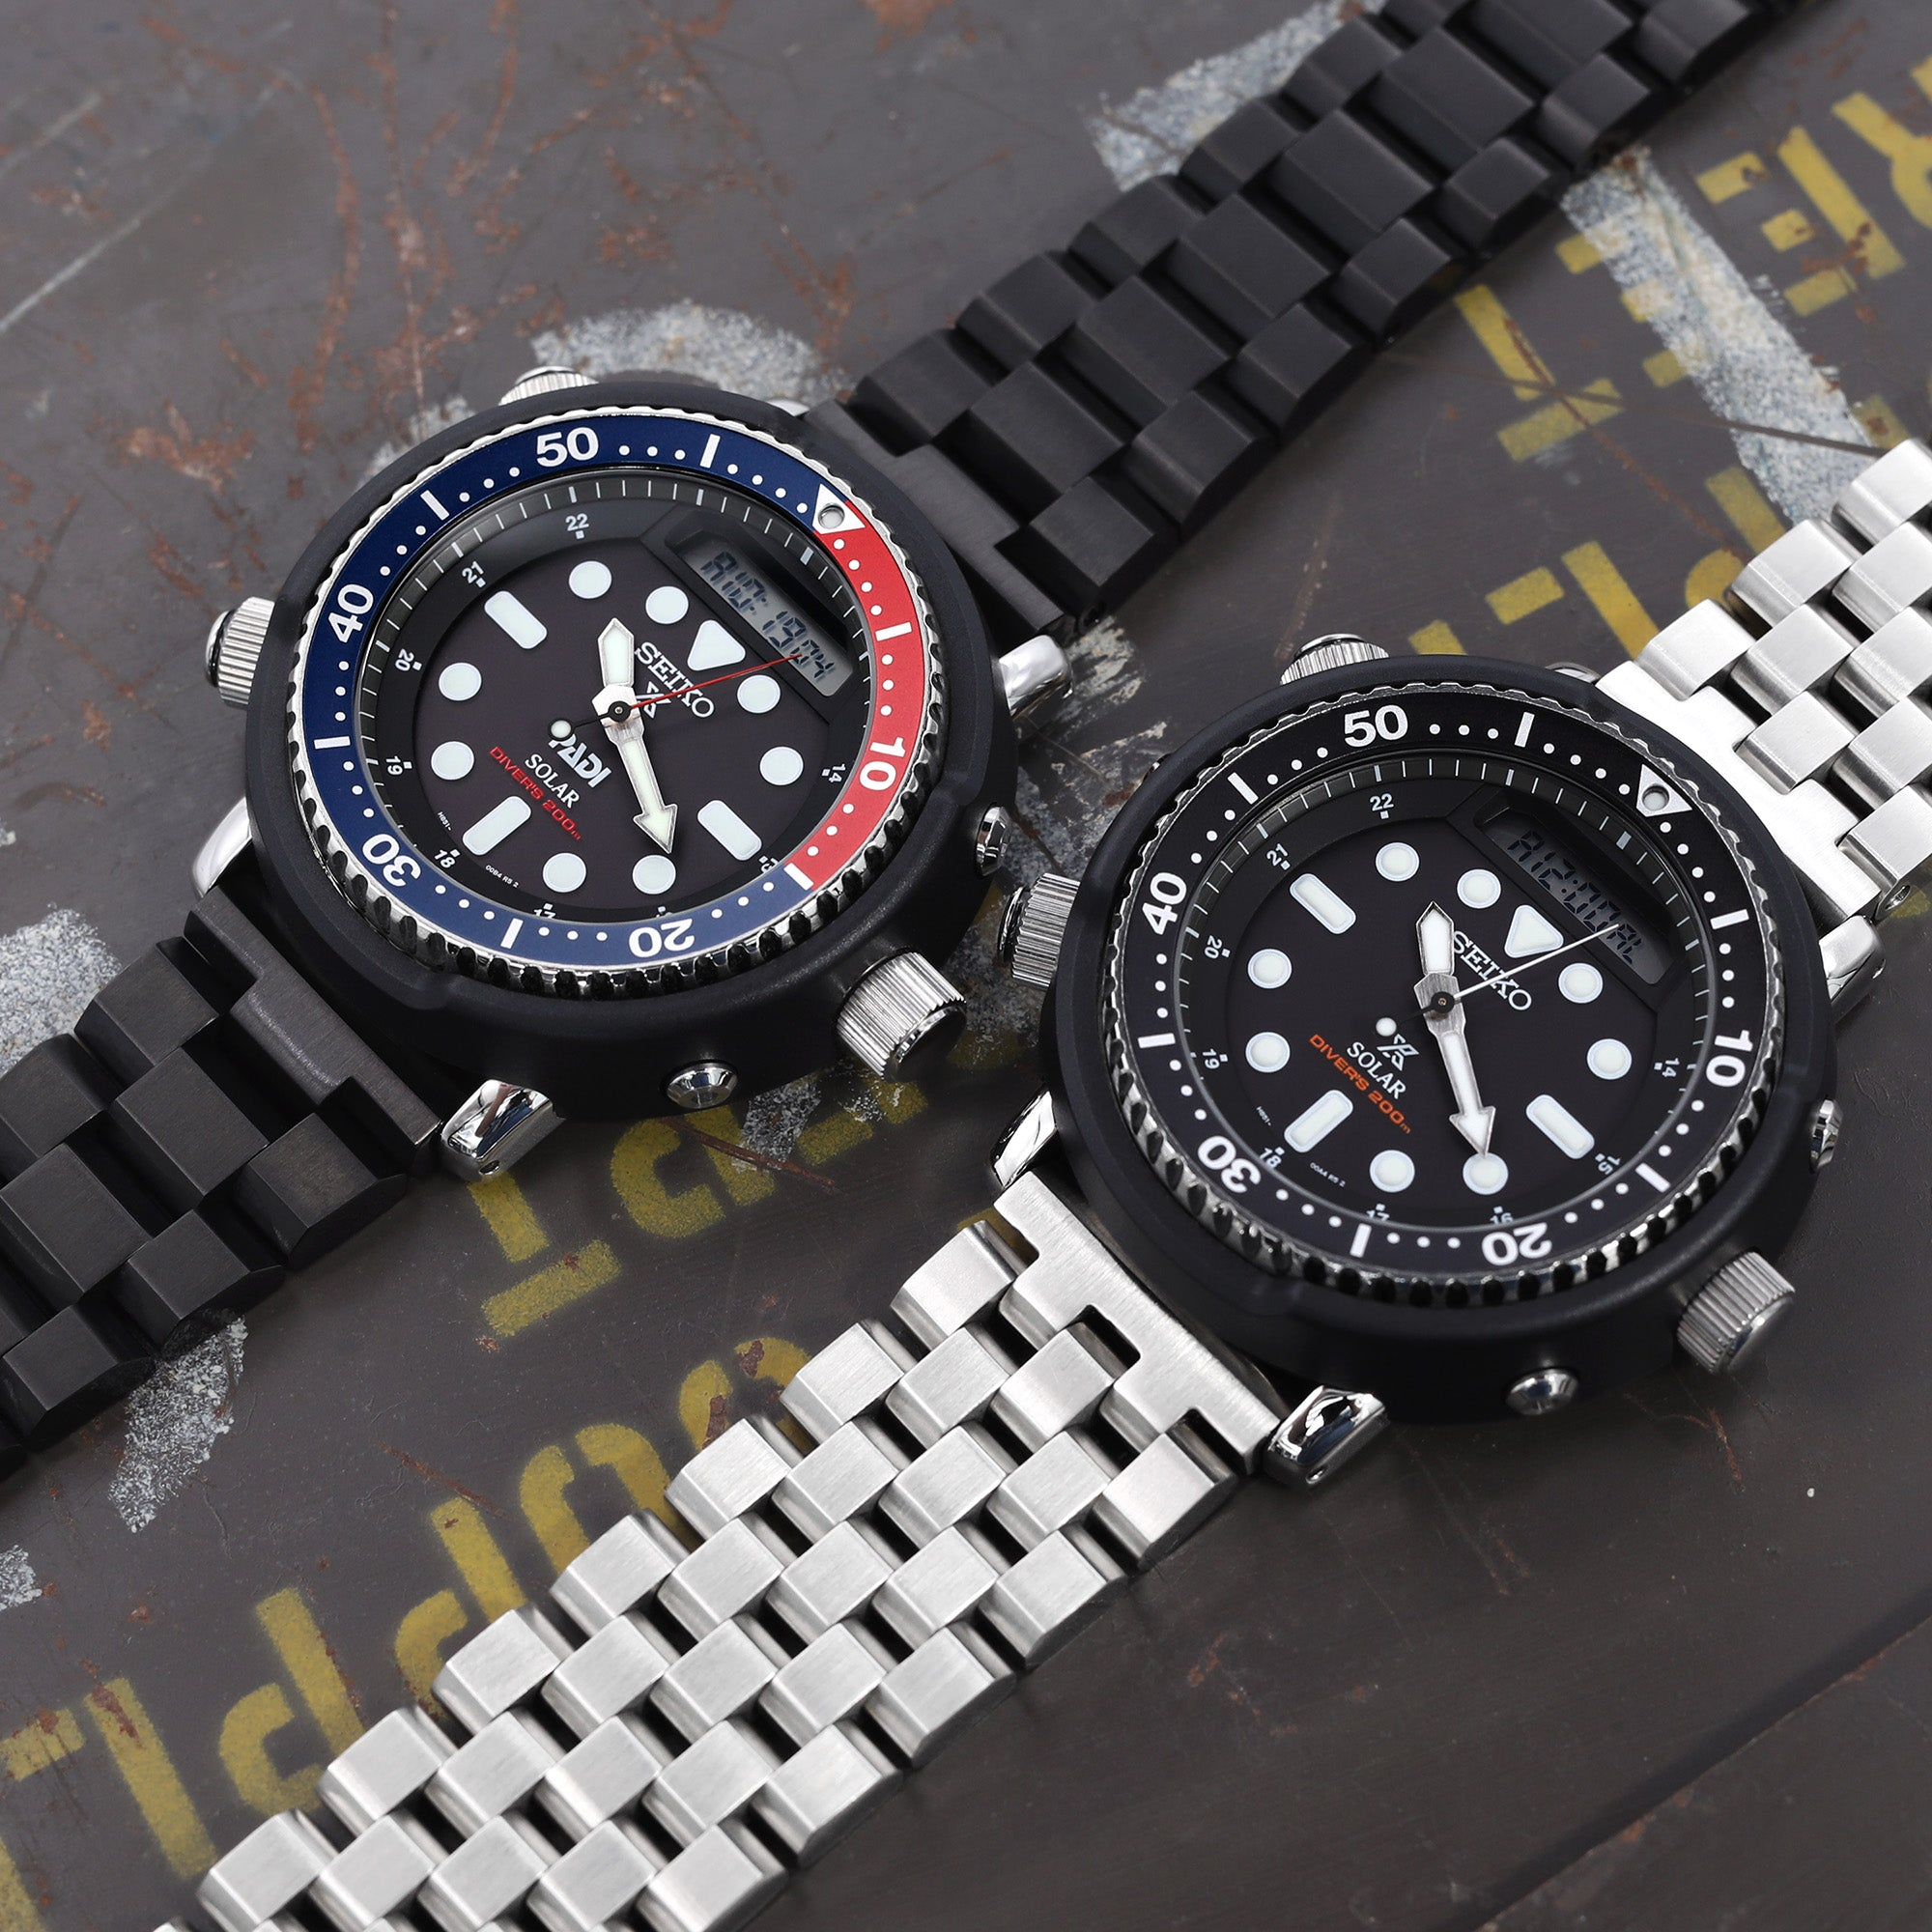 Seiko Solar Hybrid Arnie divers watch bands by Strapcode